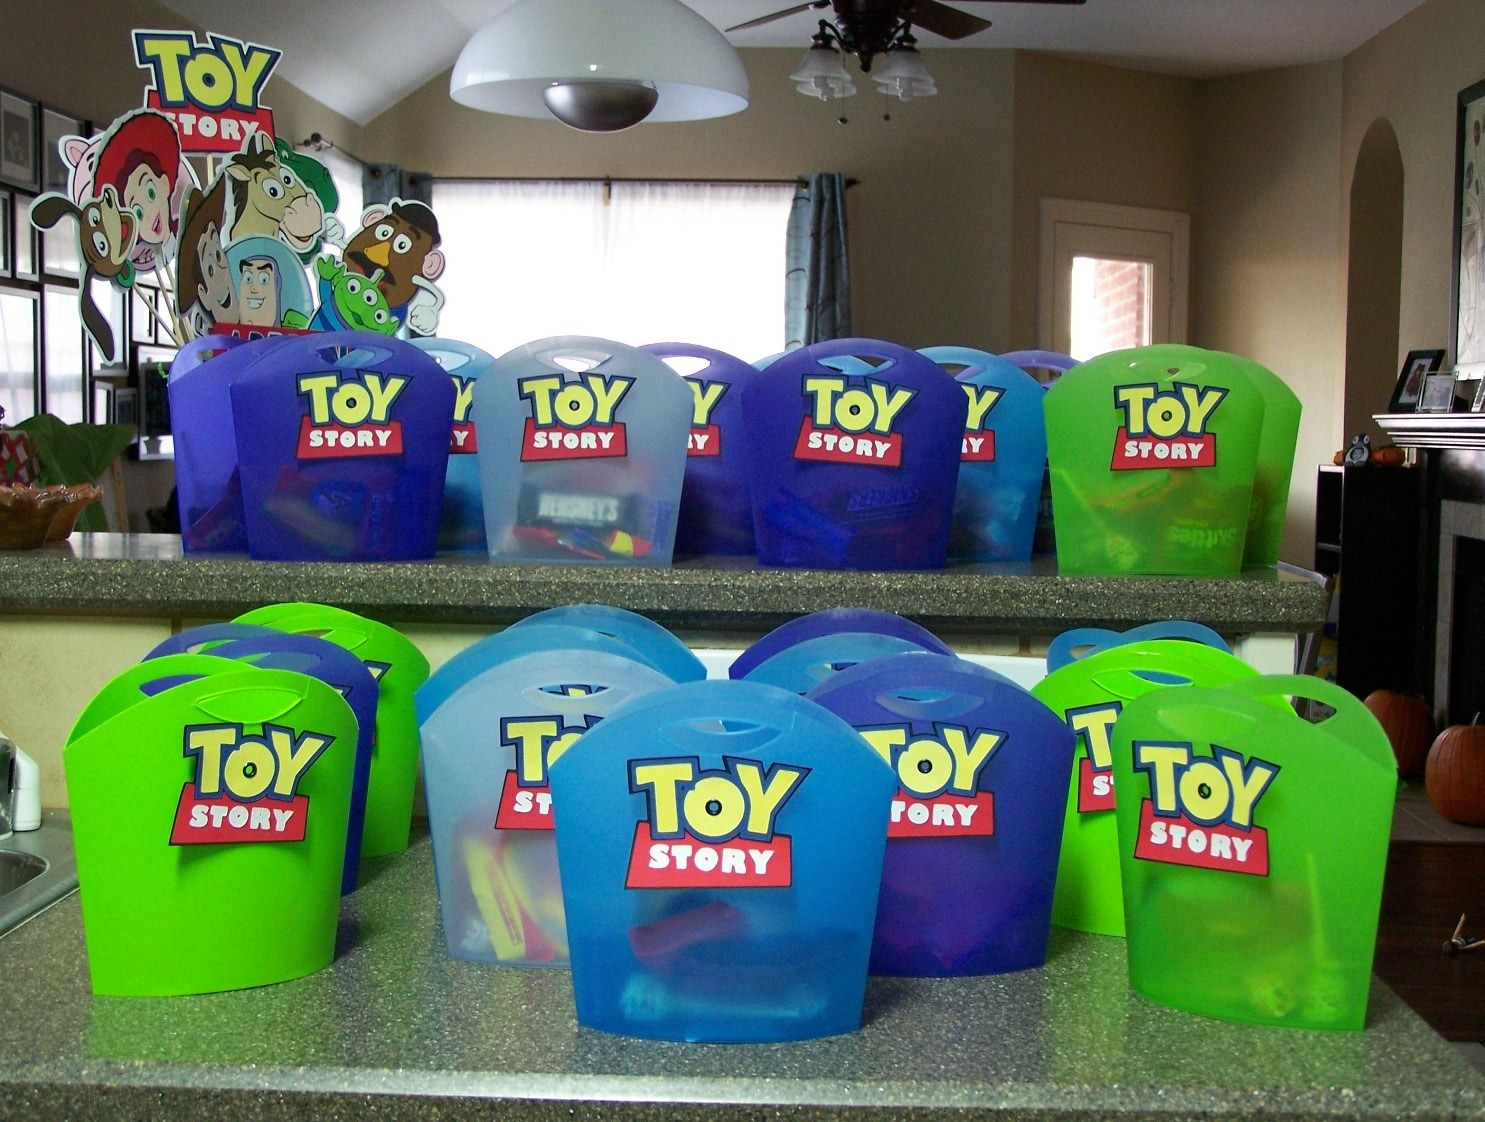 Toy story party ideas birthday in a box - Toy Story Birthday Party Leirads Card Making Corner Toy Story Party Favors